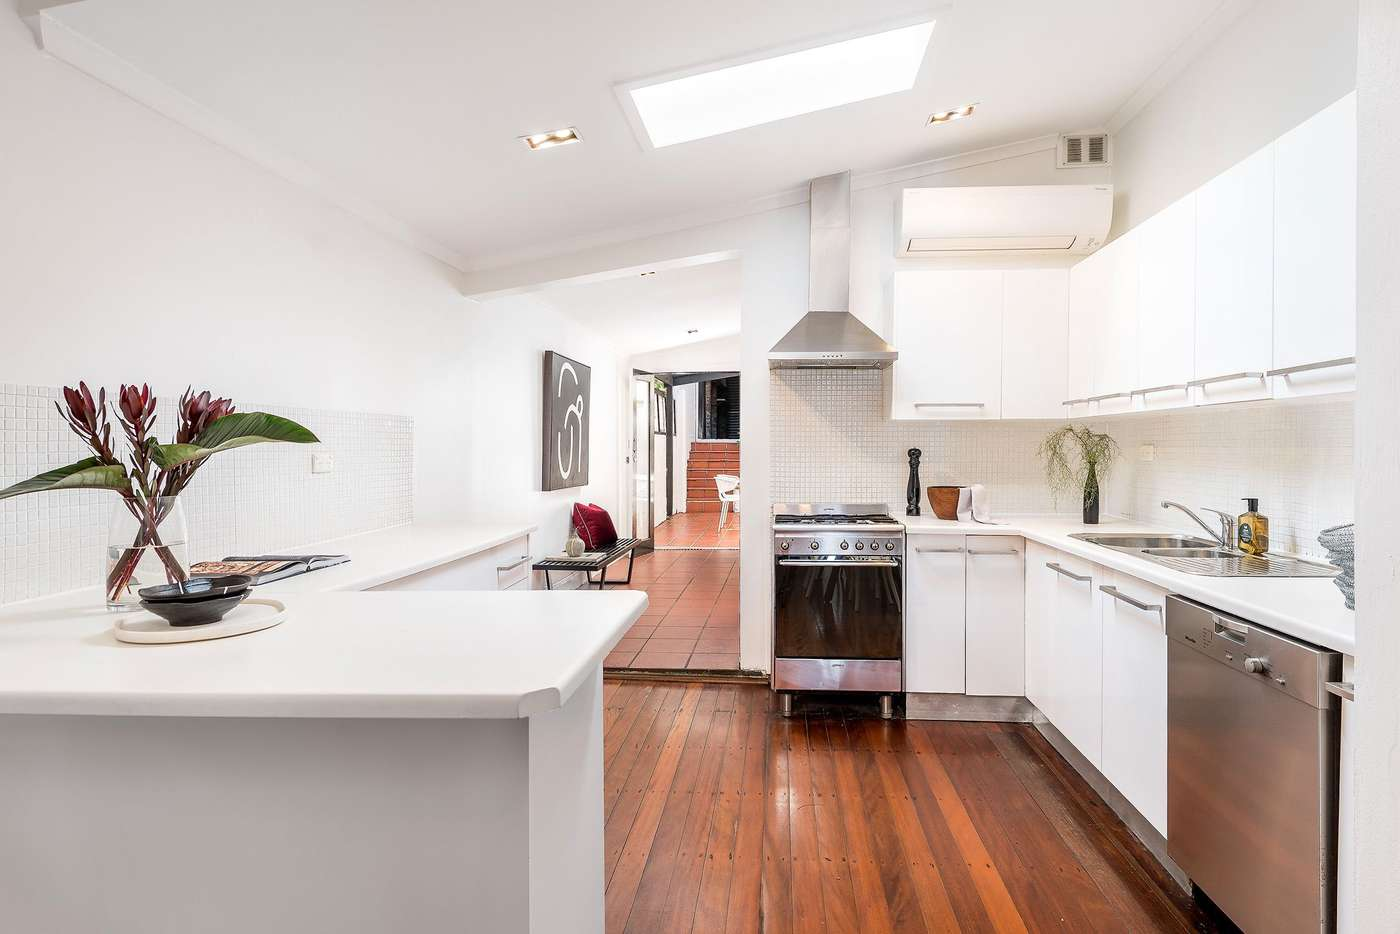 Sixth view of Homely house listing, 63 Young Street, Annandale NSW 2038